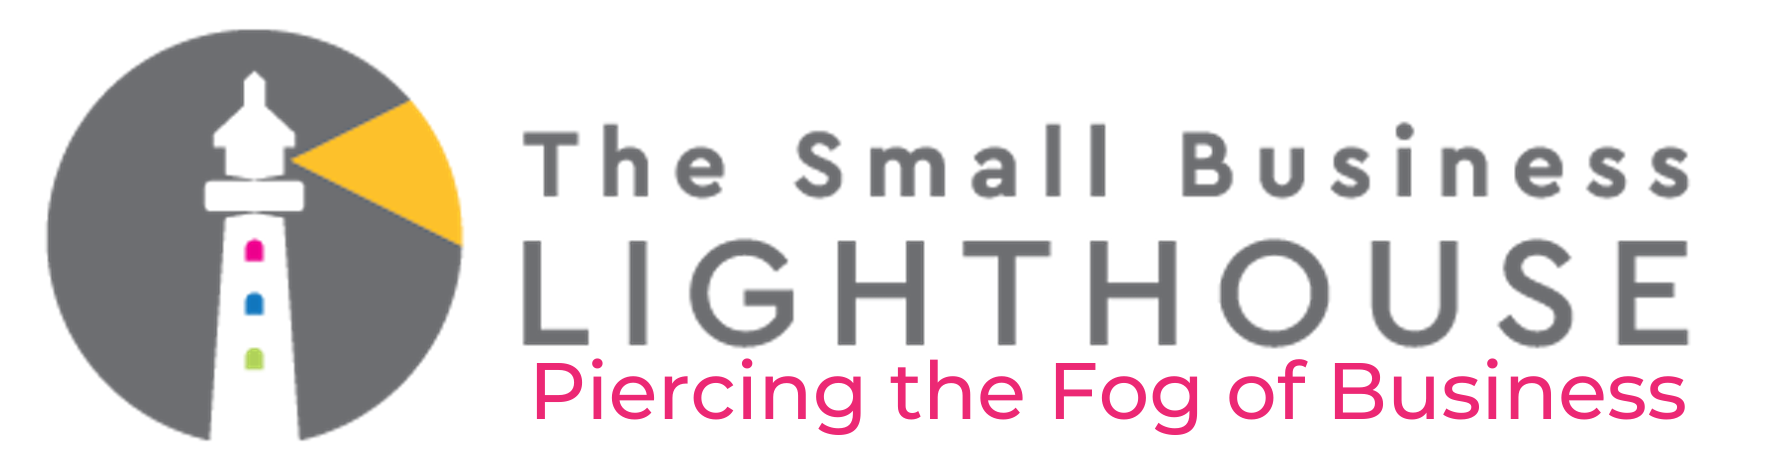 The Small Business Lighthouse